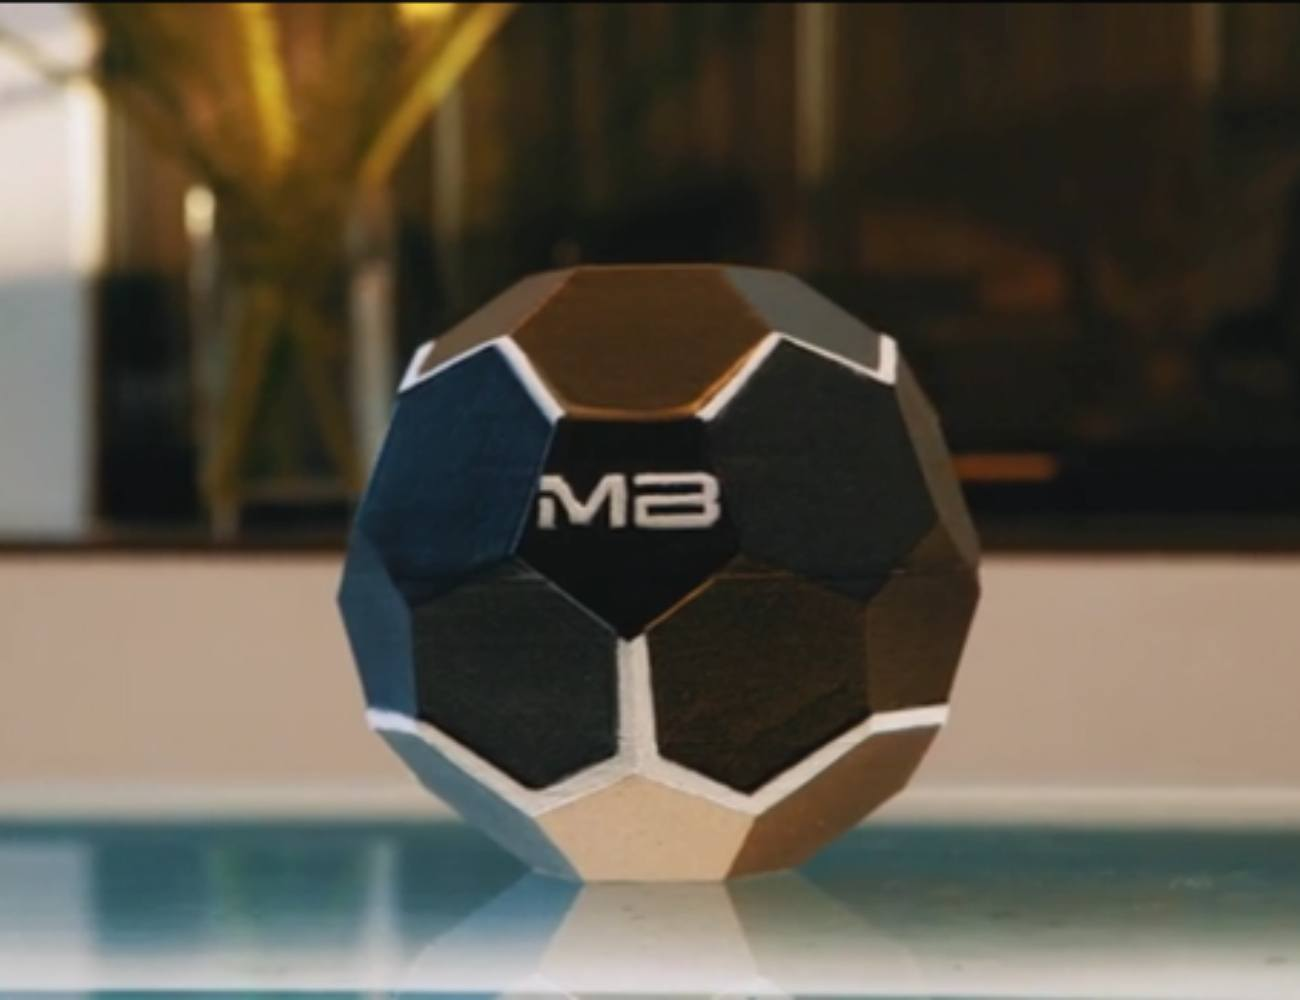 MotherBox Truly Wireless Charger